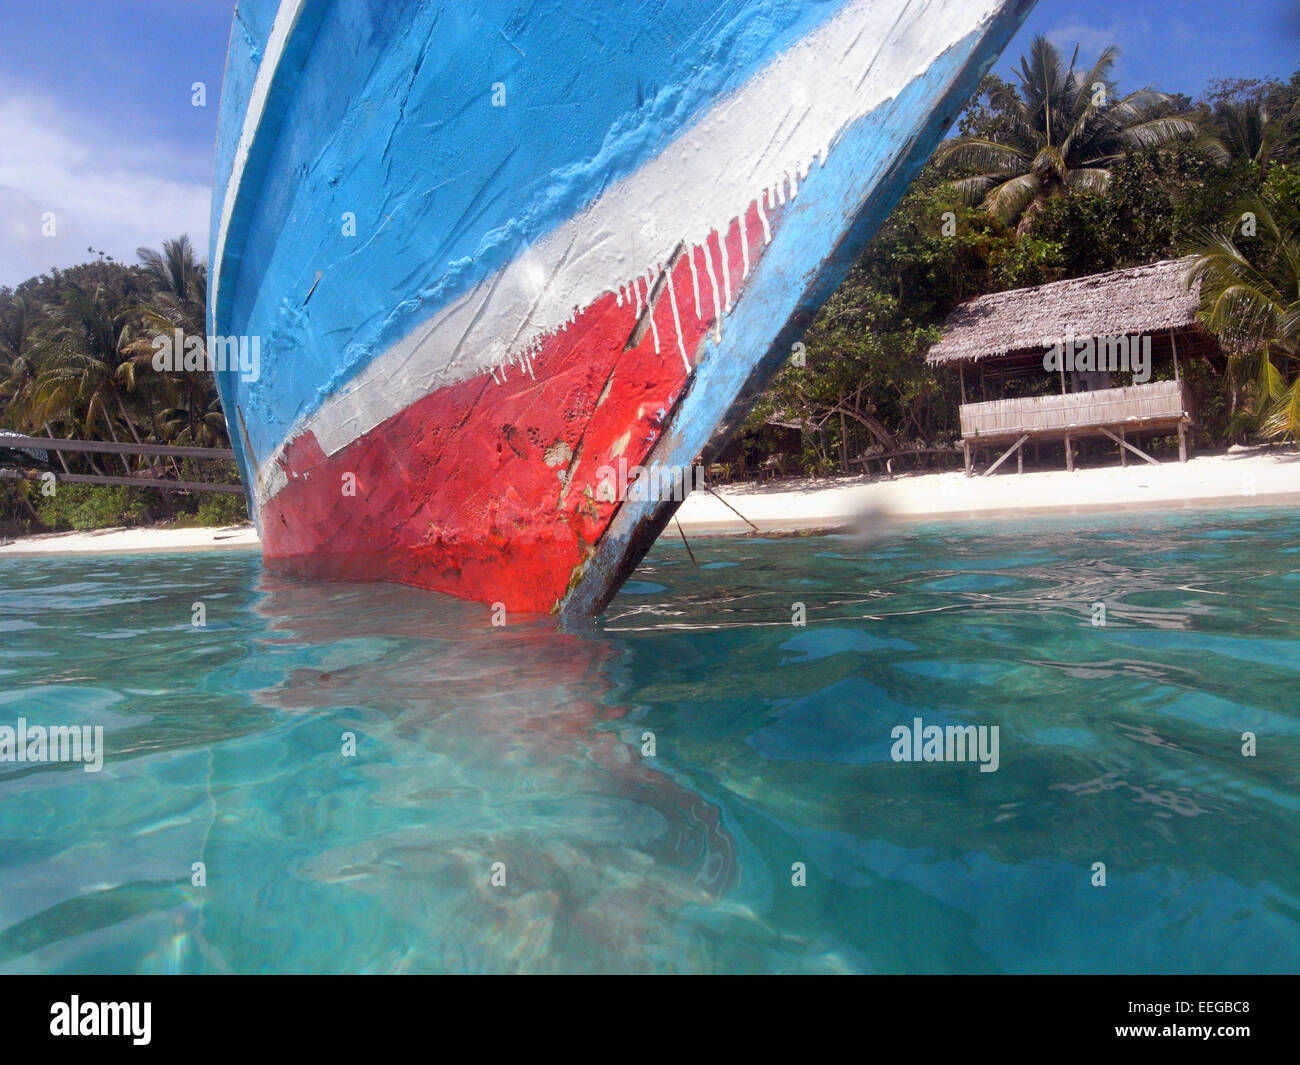 Bow of traditional wooden prahu moored near Gam Island, Raja Ampat, Papua province, Indonesia. No PR Stock Photo